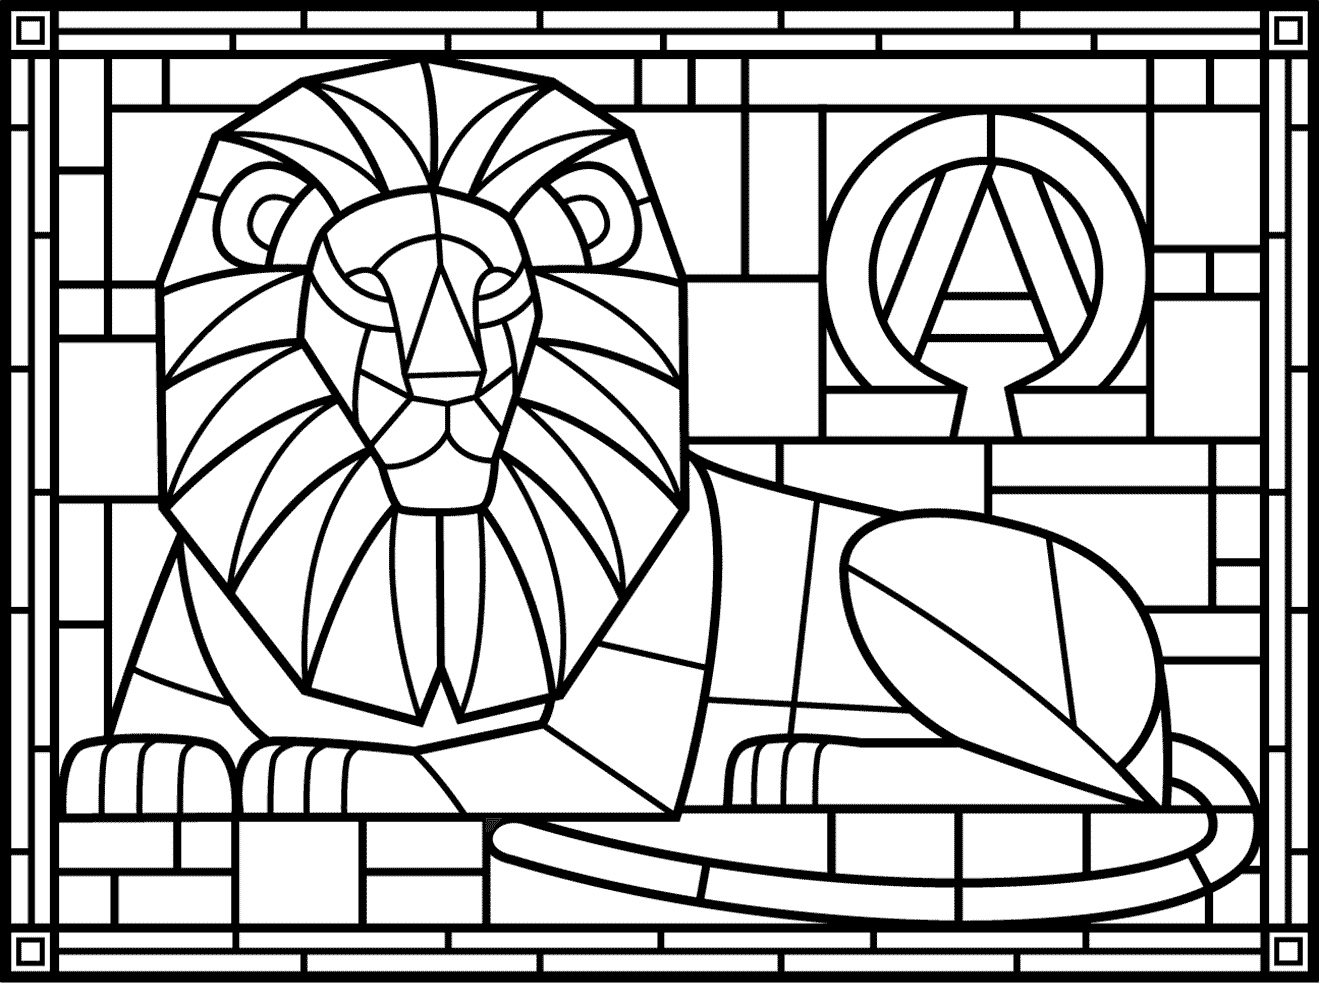 Coloring Pages Colorings Amalthea Stained Glass Page - My Little ... | 1000x1319